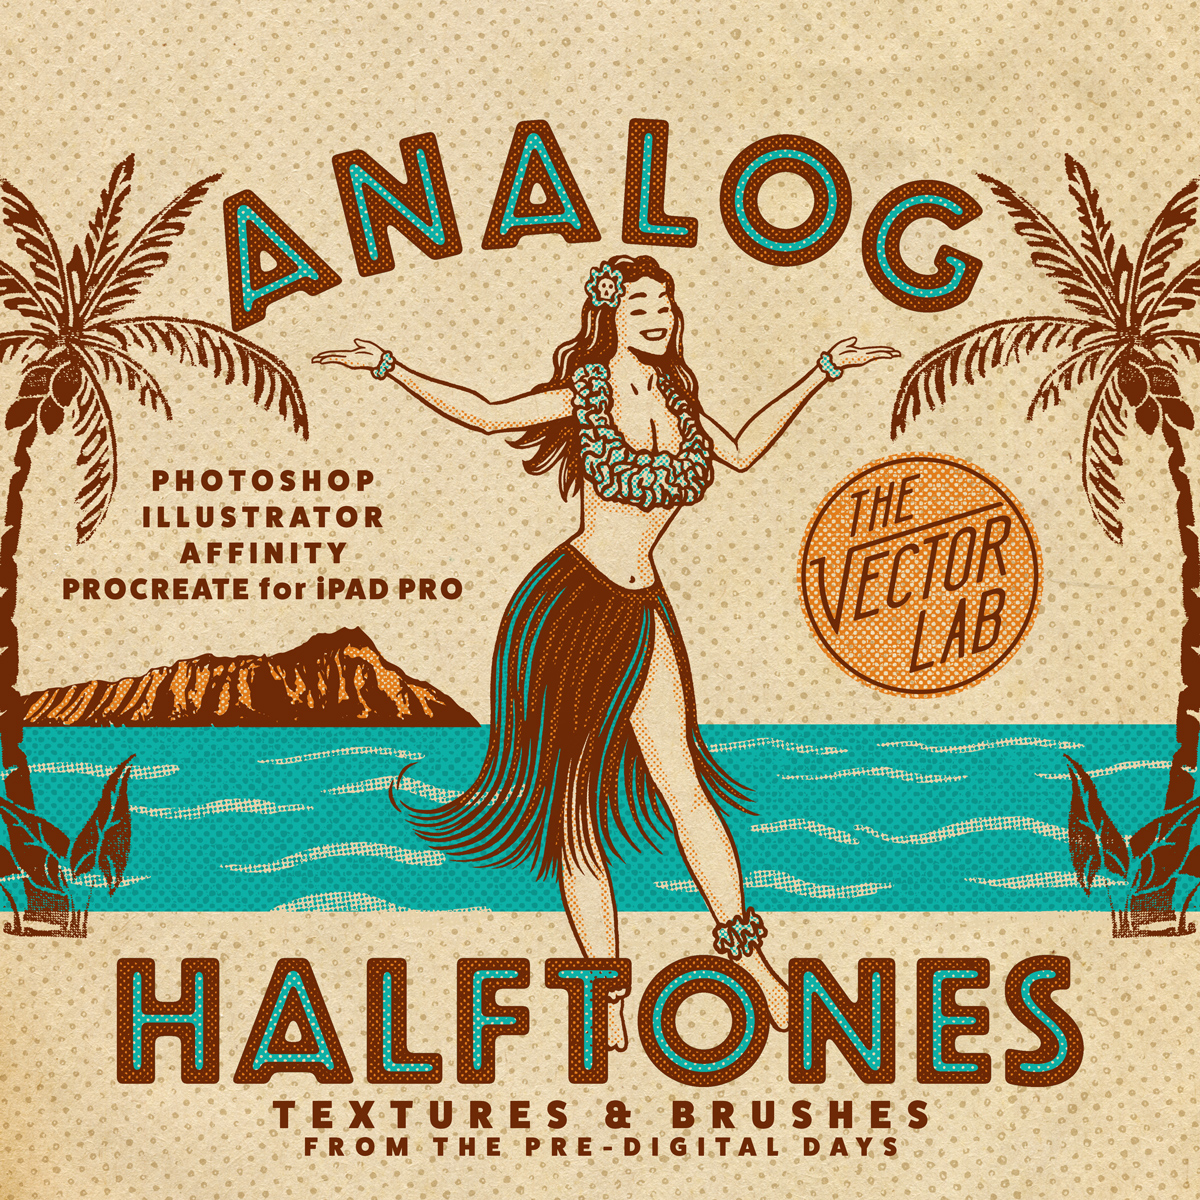 ANALOG-HALFTONES-COVER-3.jpg